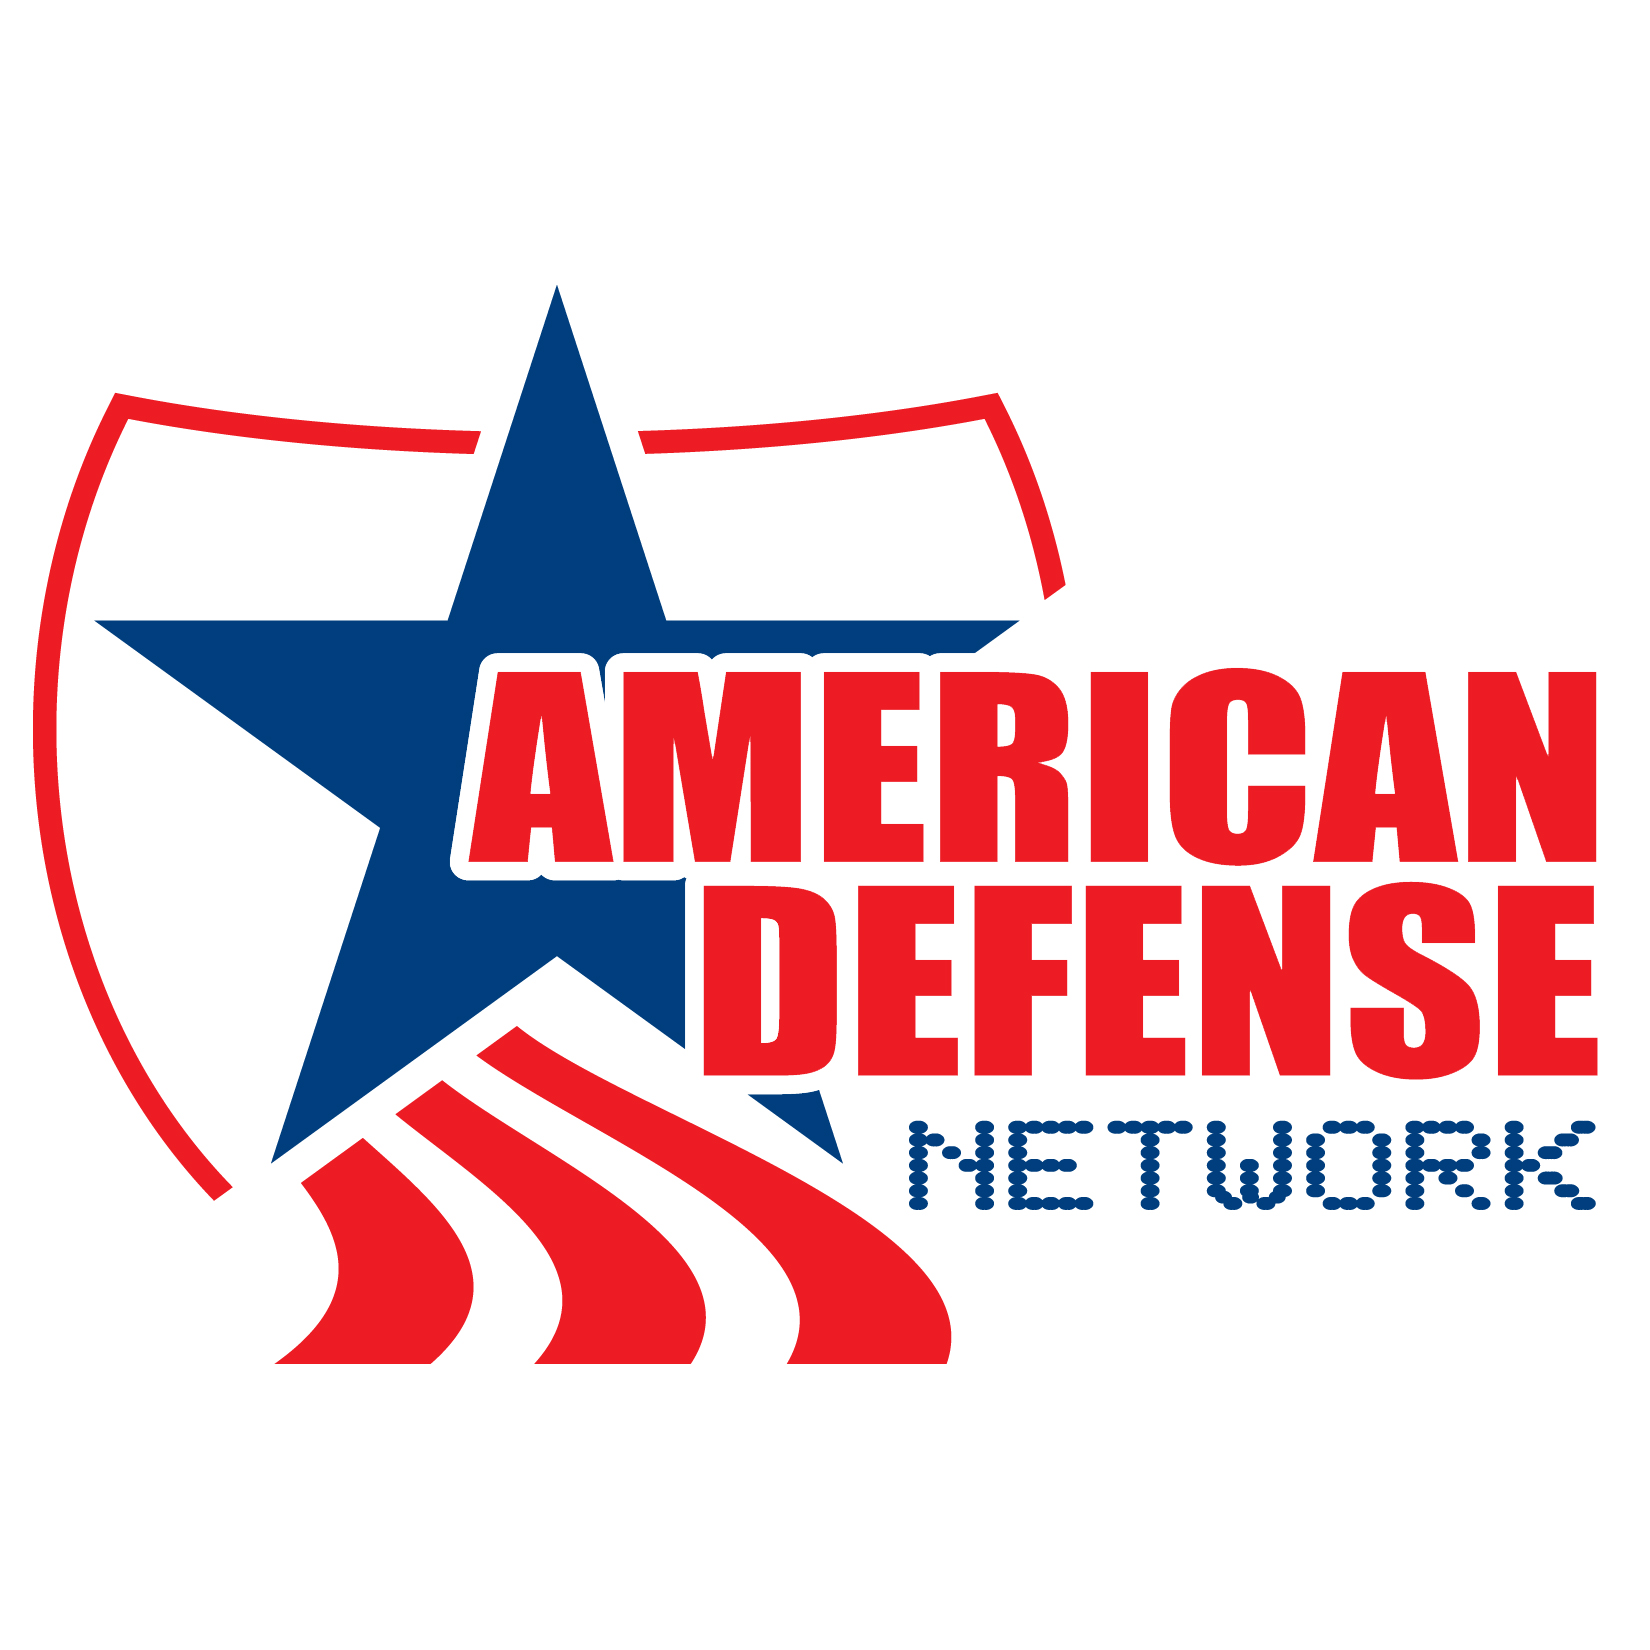 New Non-Profit Organization American Defense Network Receives Status from IRS